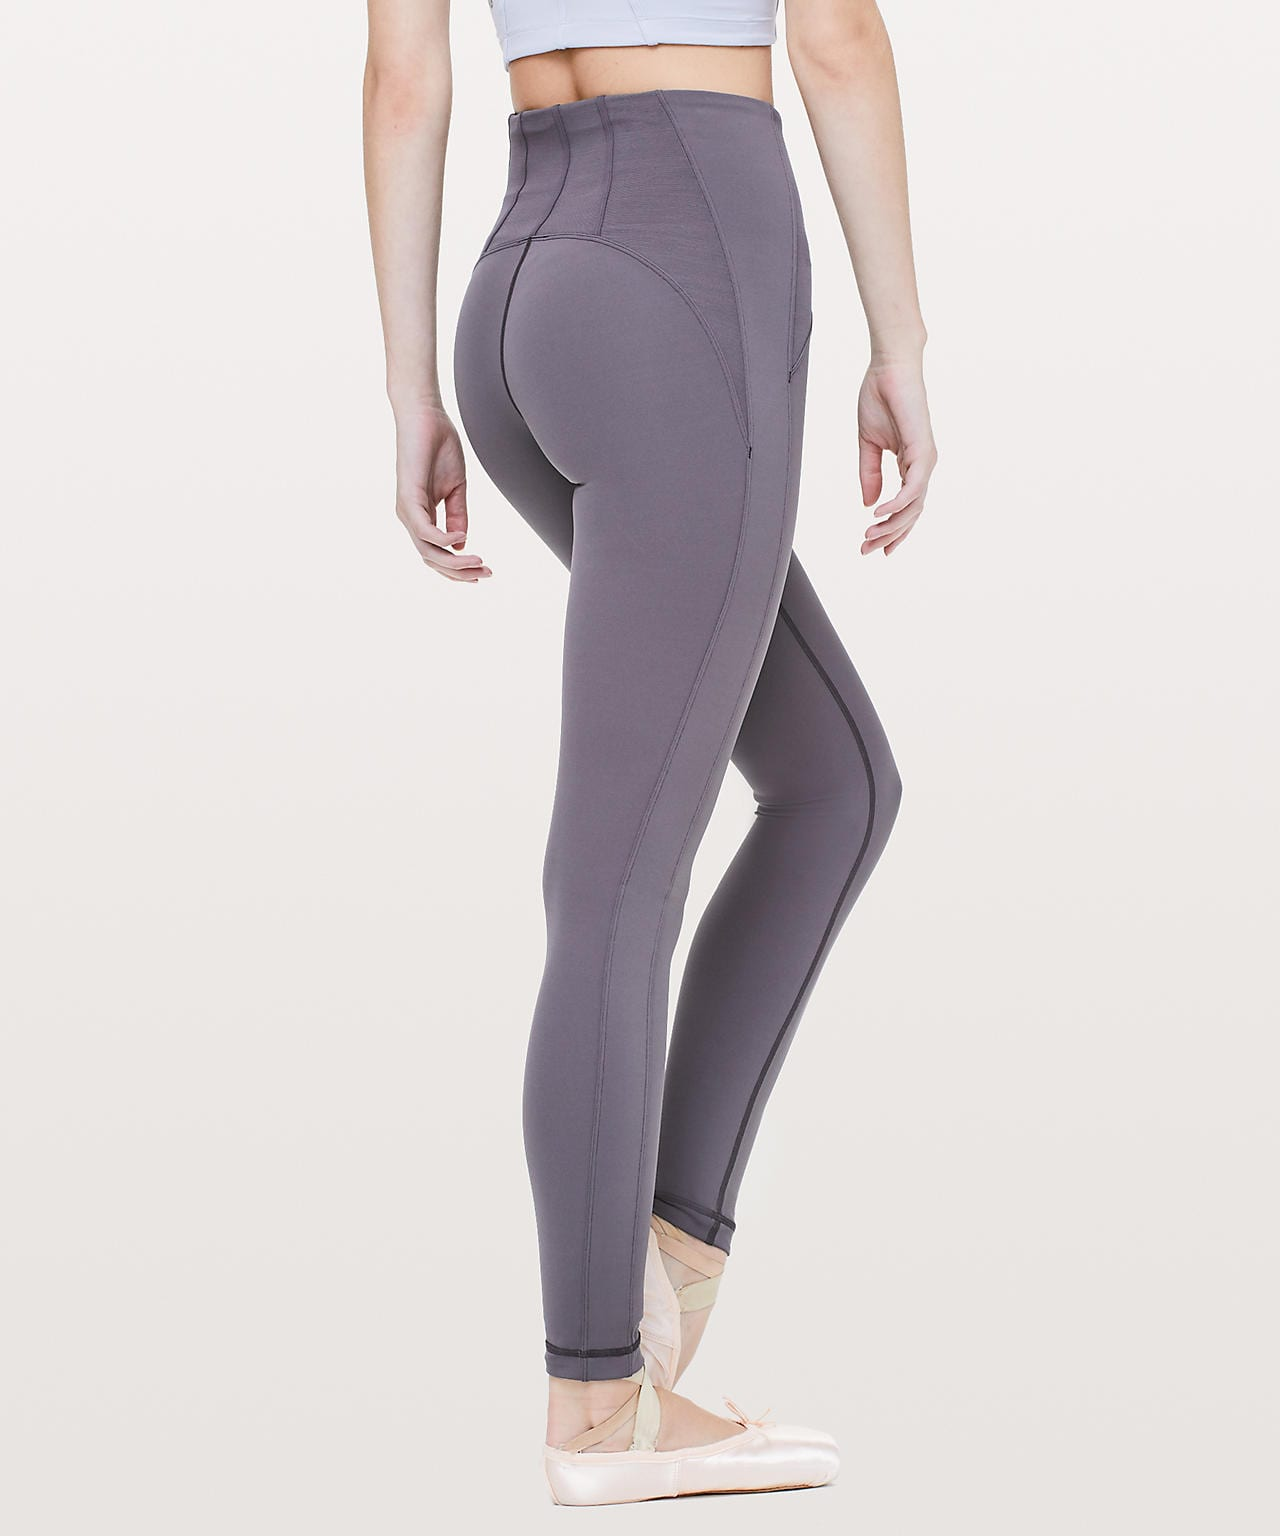 c6fb8e3a2 Lululemon Royal Ballet Collection